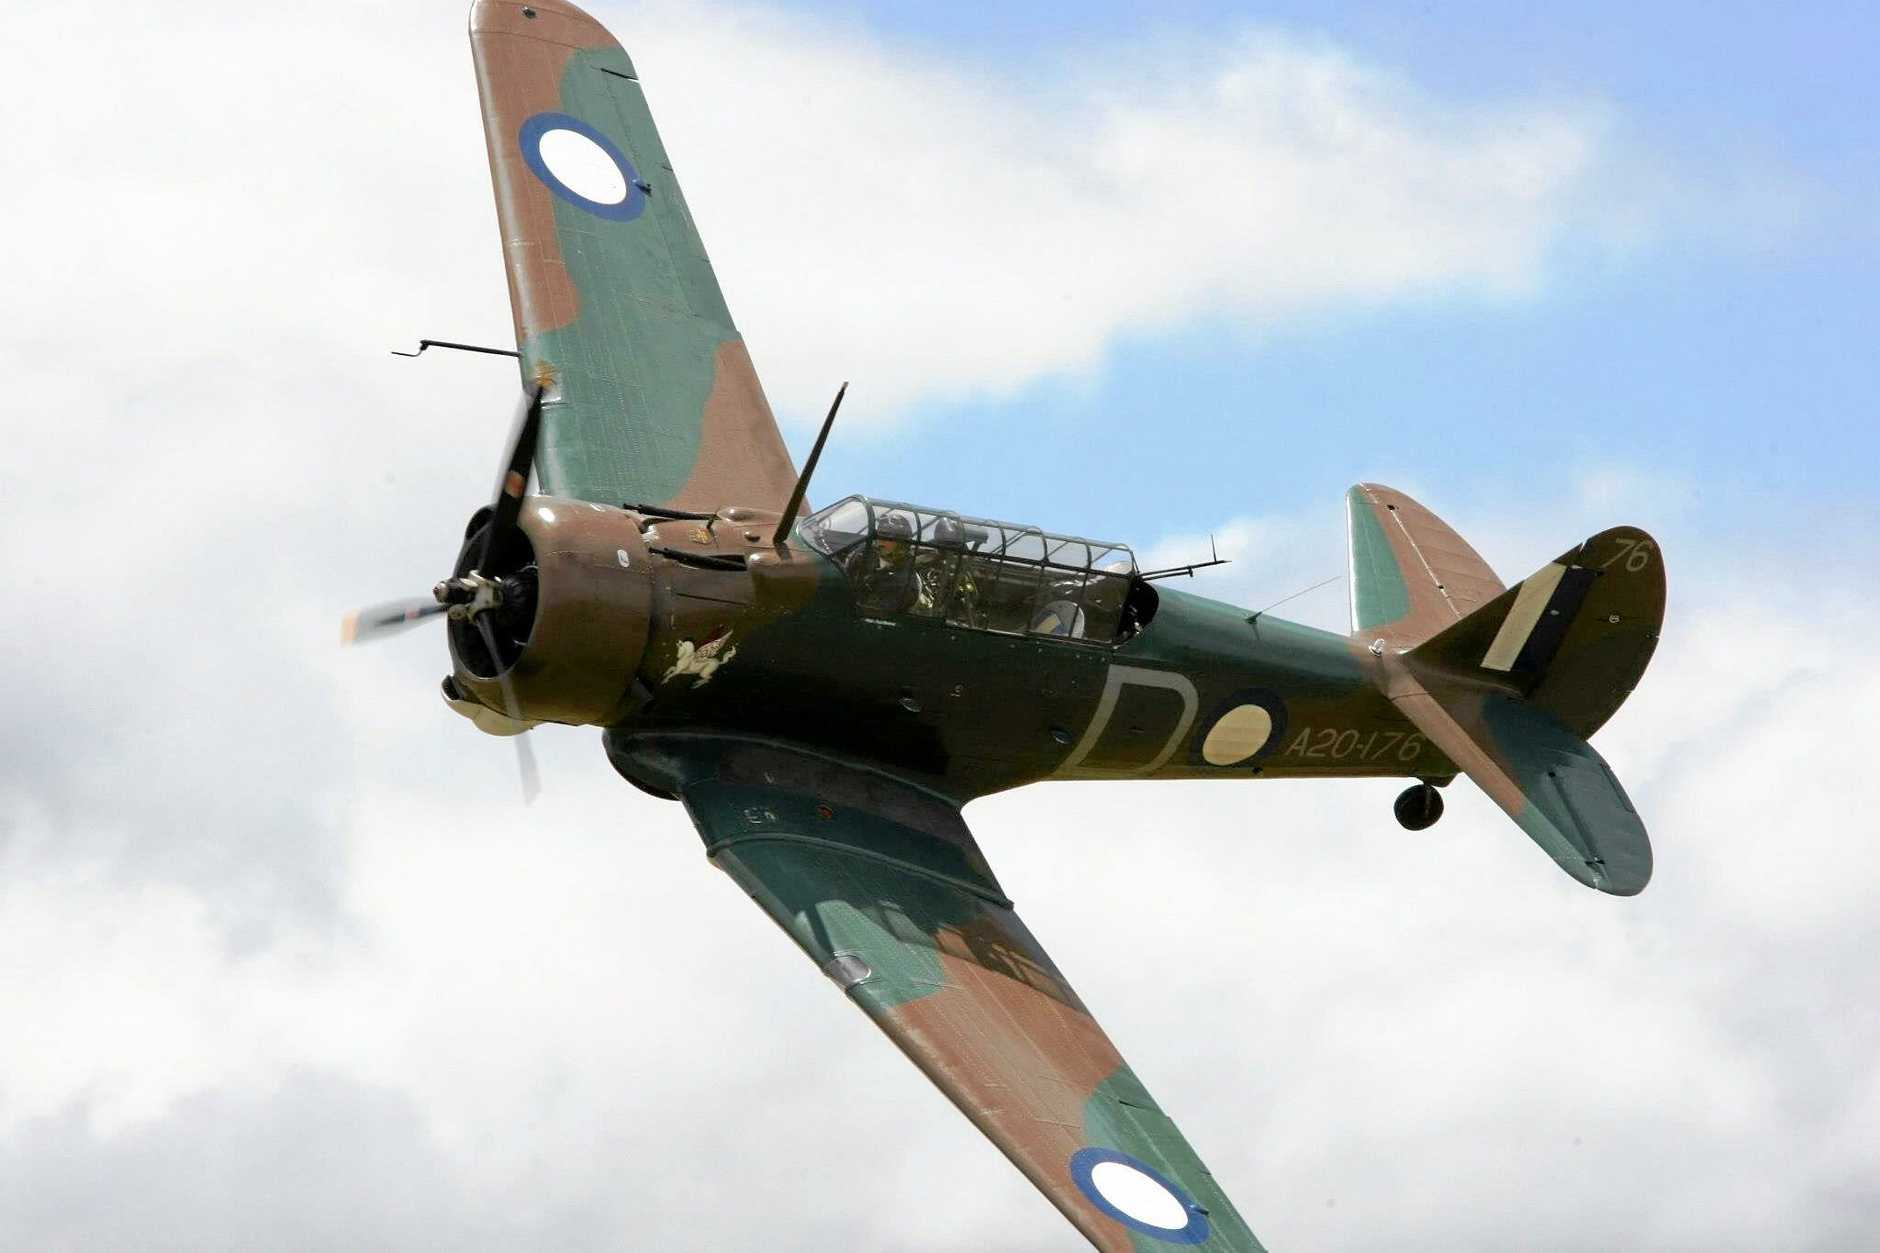 The Great Eastern Fly-In promises plenty of high-flying aerobatics as well as ex-military aircraft displays.